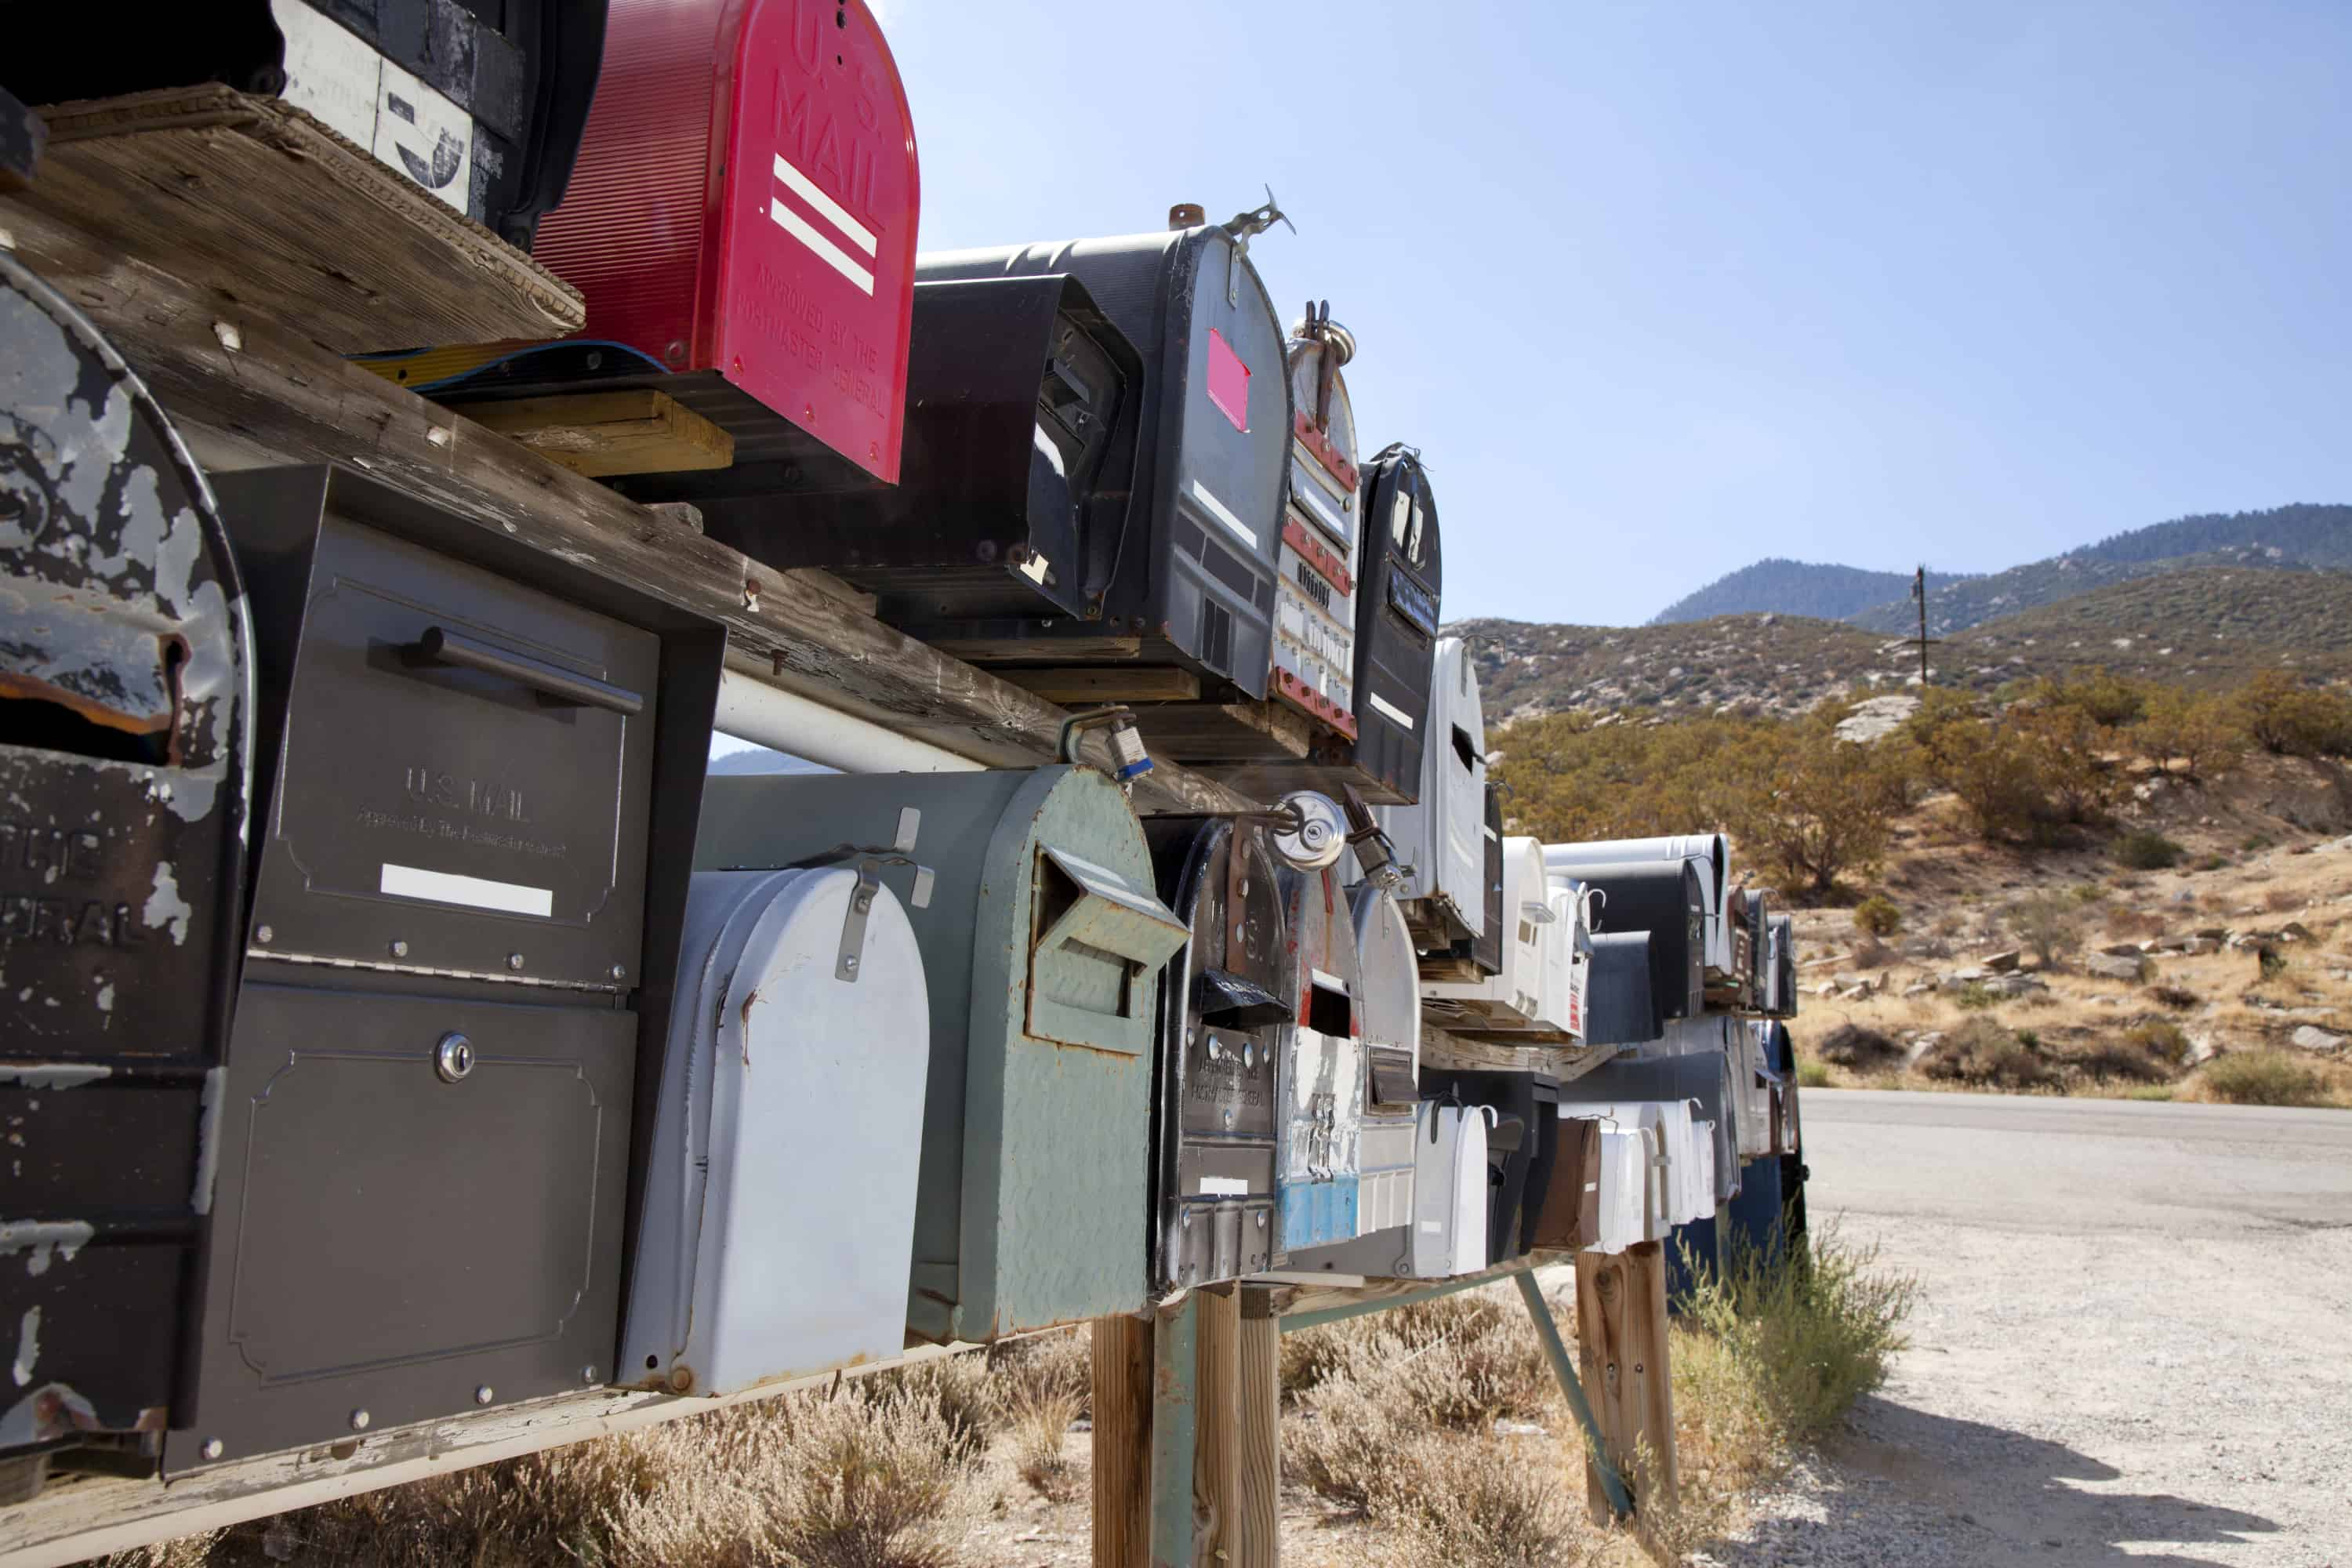 Rows of mailboxes open to identity theft on the side of a rural road.